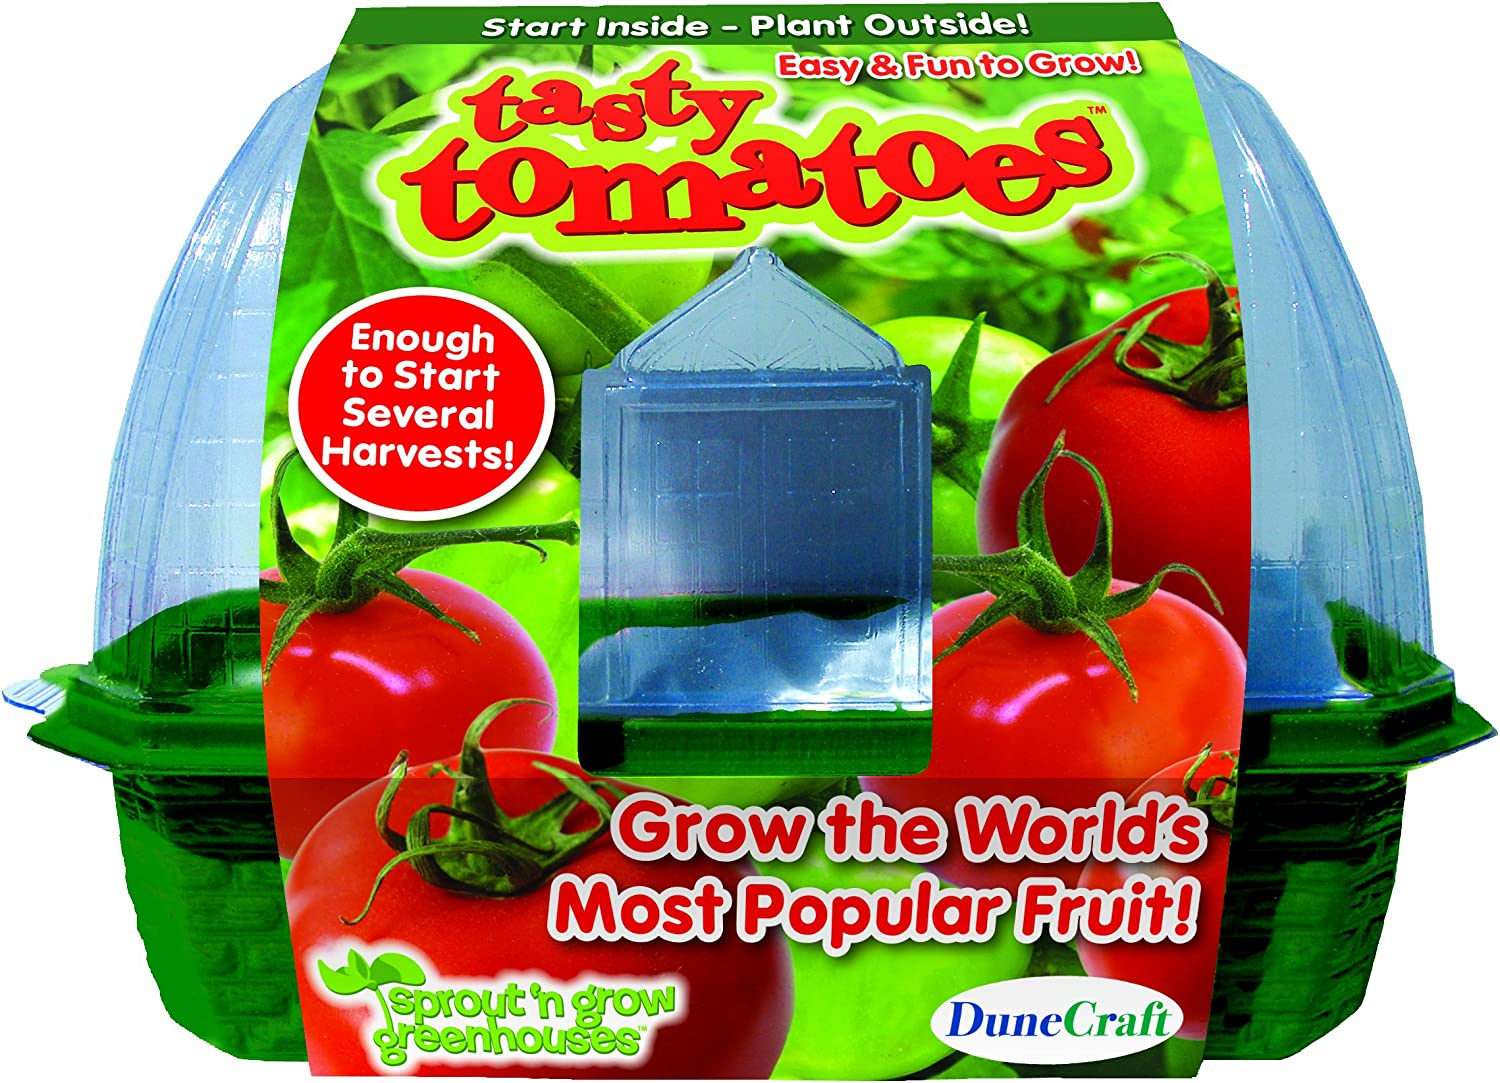 DuneCraft Sprout n Grow Greenhouses Peanuts